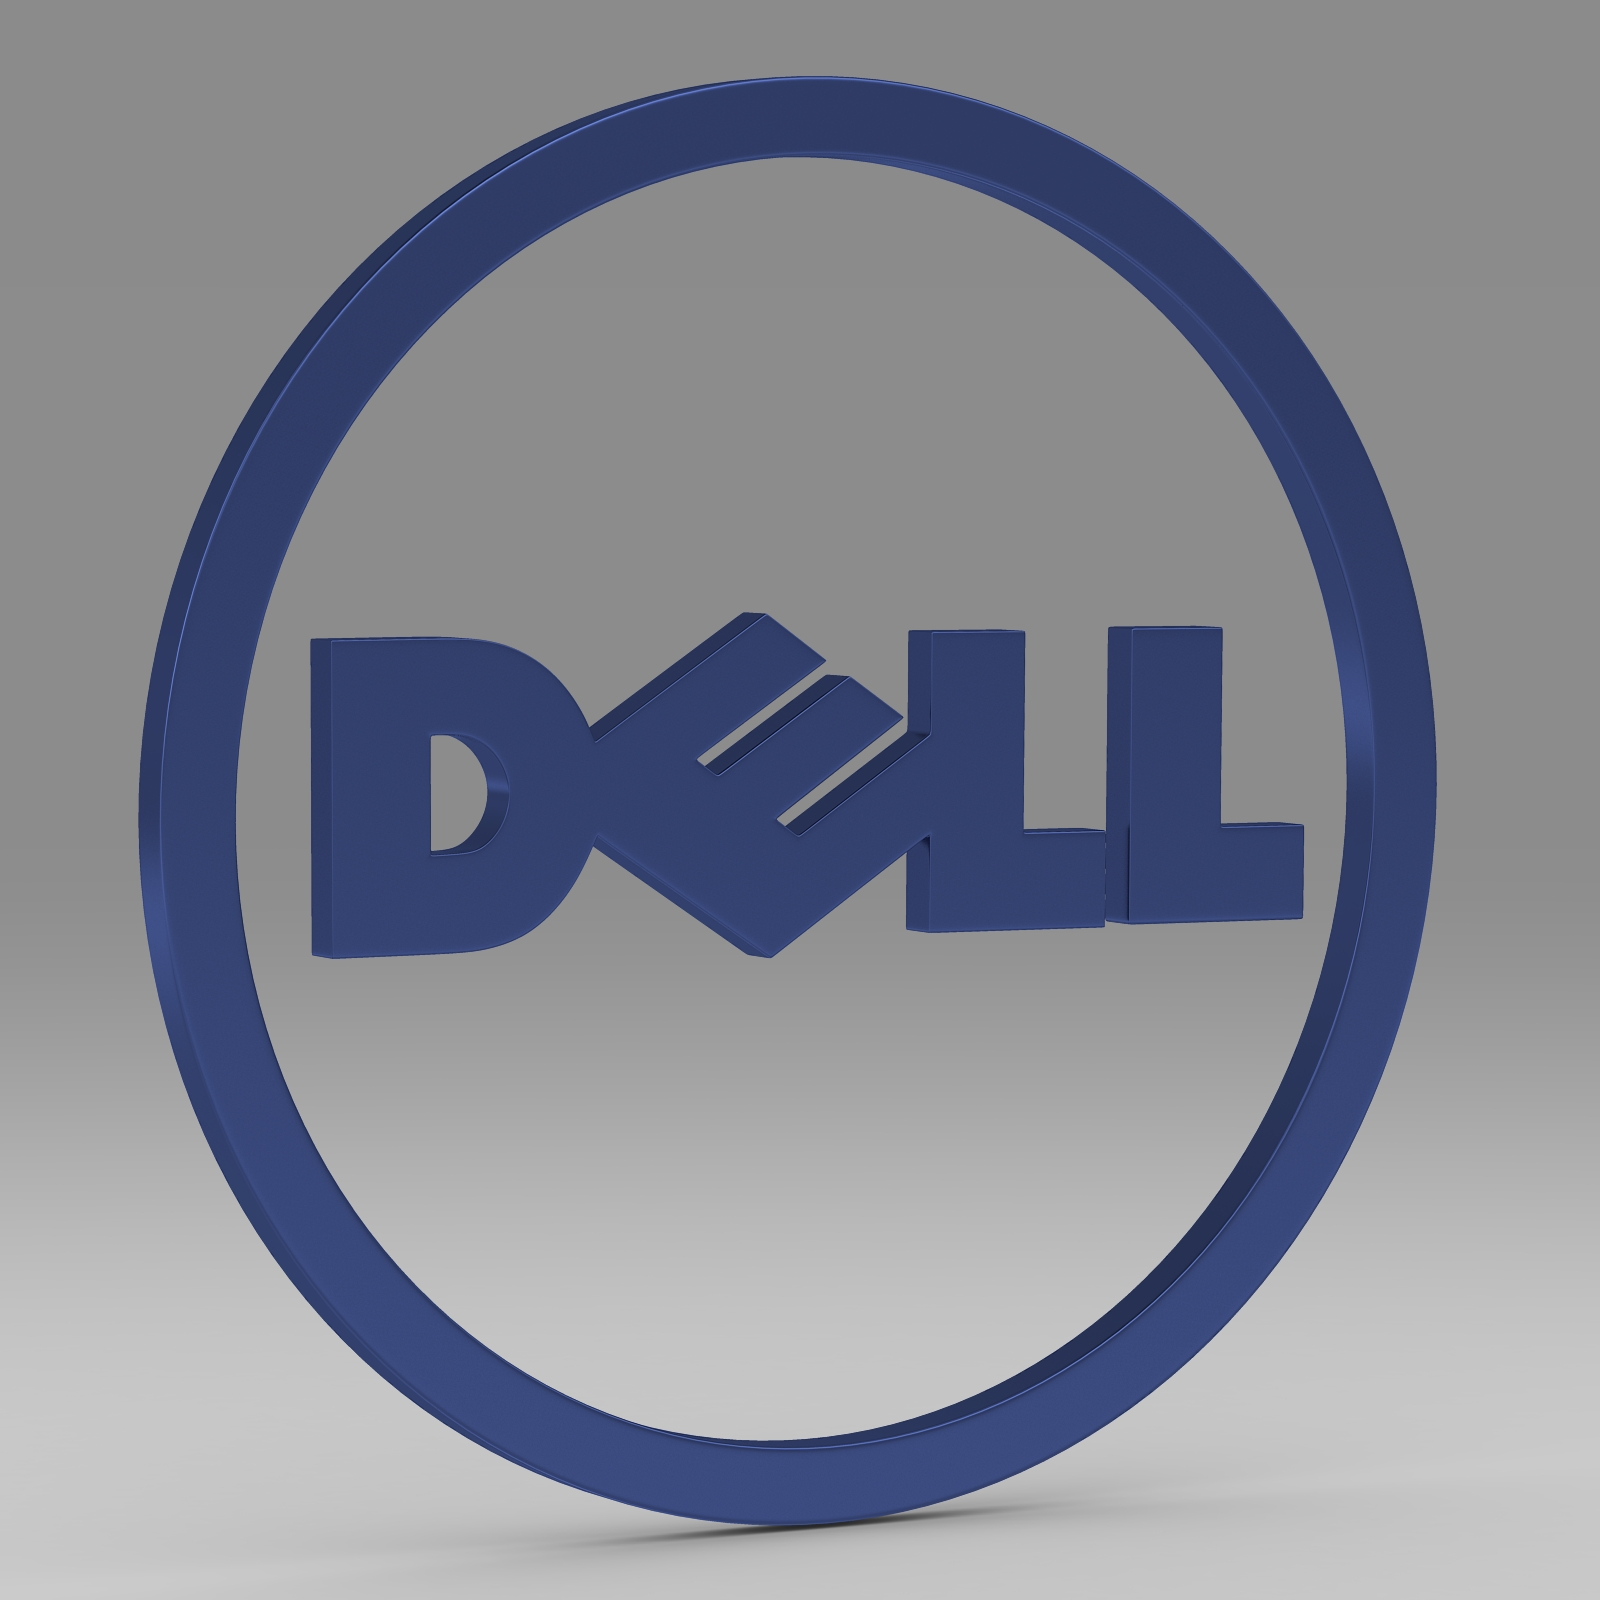 dell logo 2 3d model 3ds fbx c4d lwo ma mb hrc xsi obj 223625